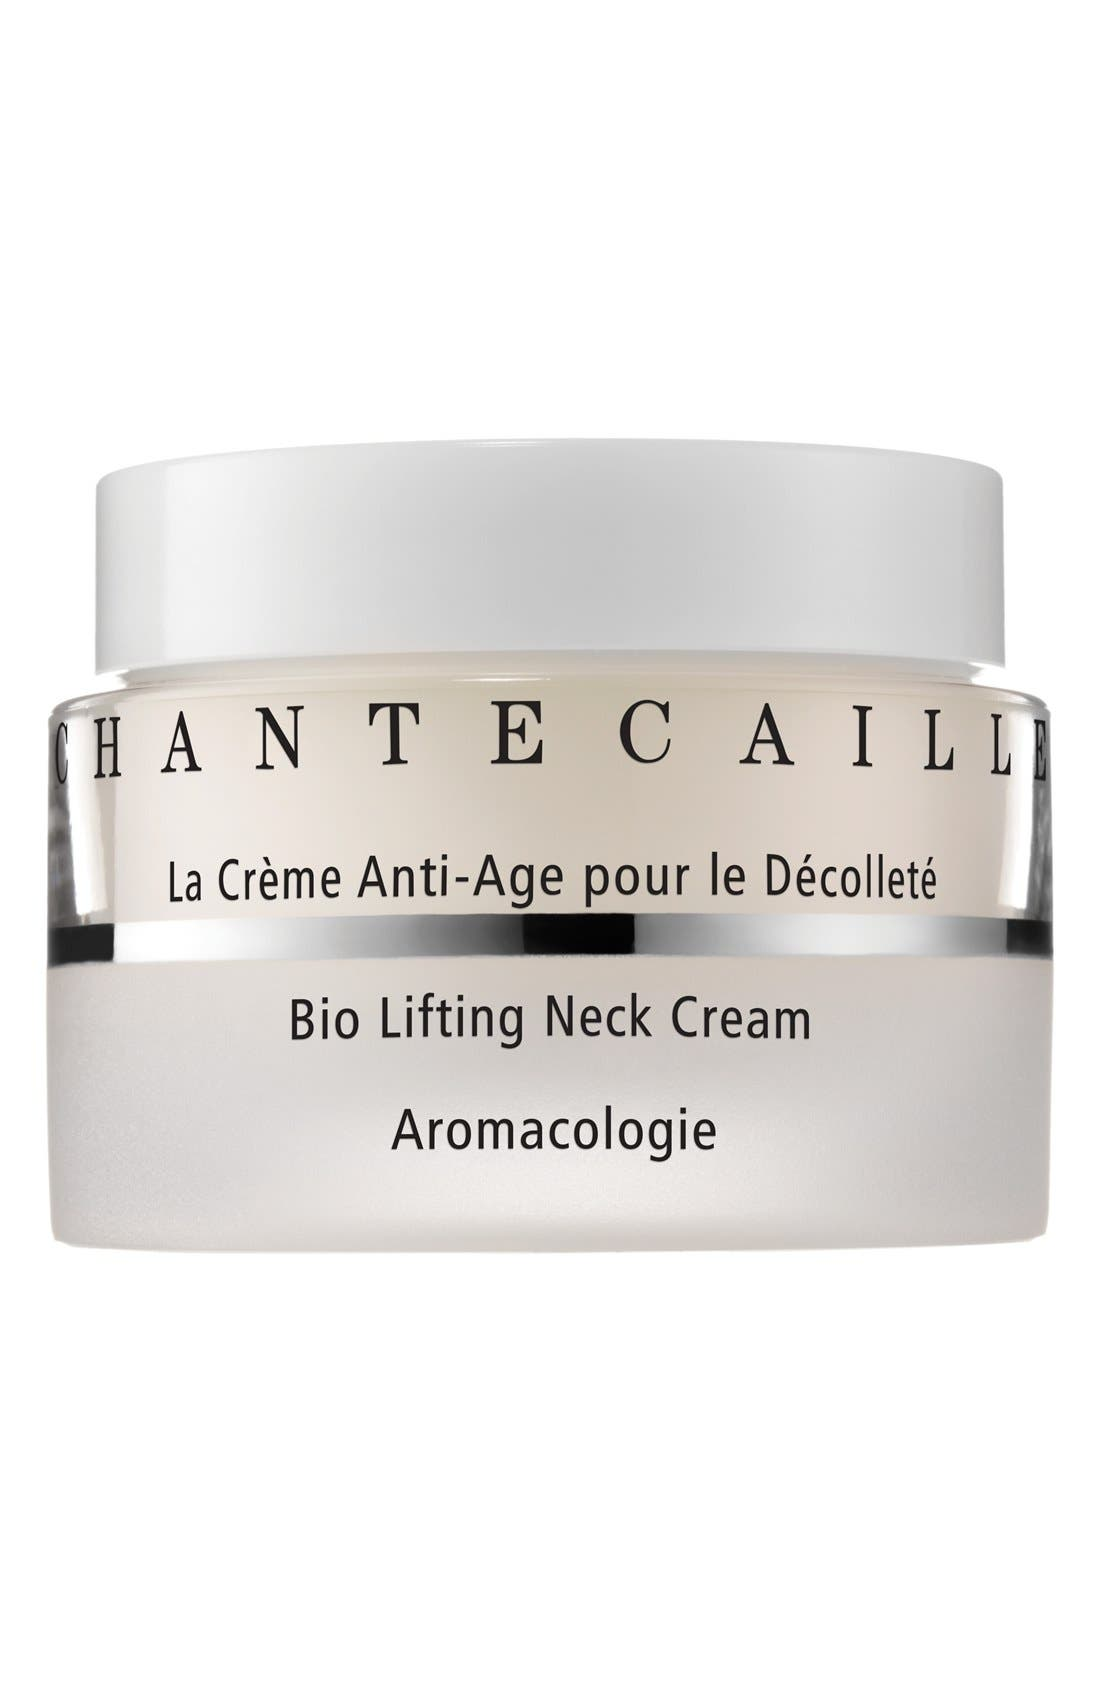 Chantecaille Bio Lifting Neck Cream